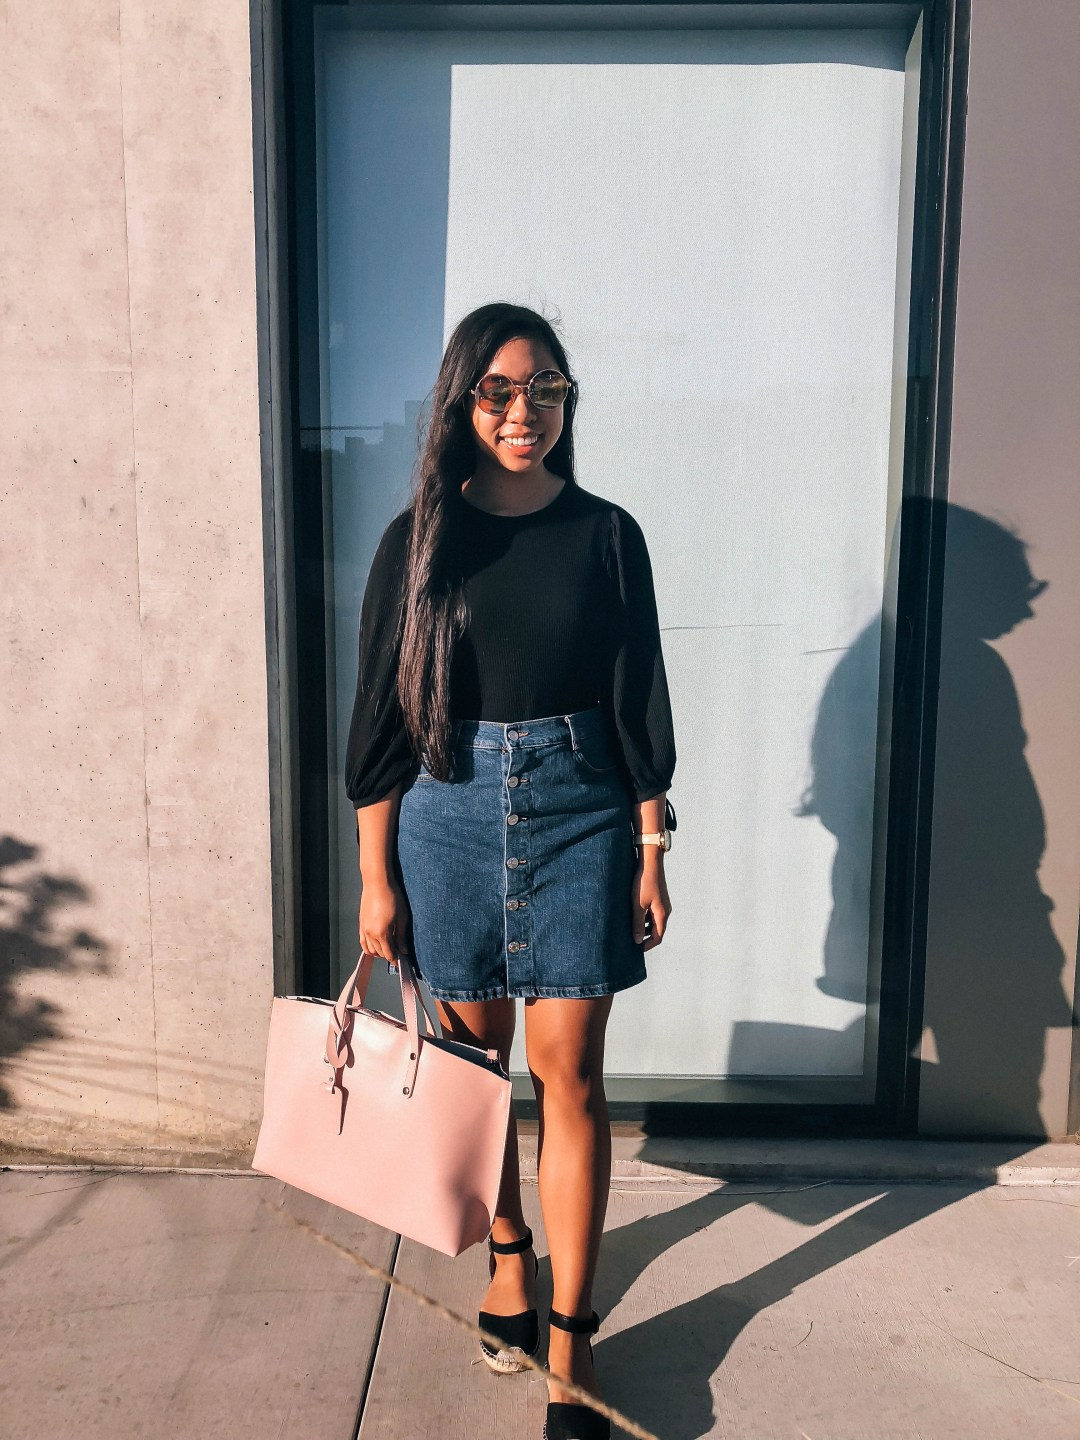 IMG 3437 - What I Wore This Week in College | Spring Outfits for School